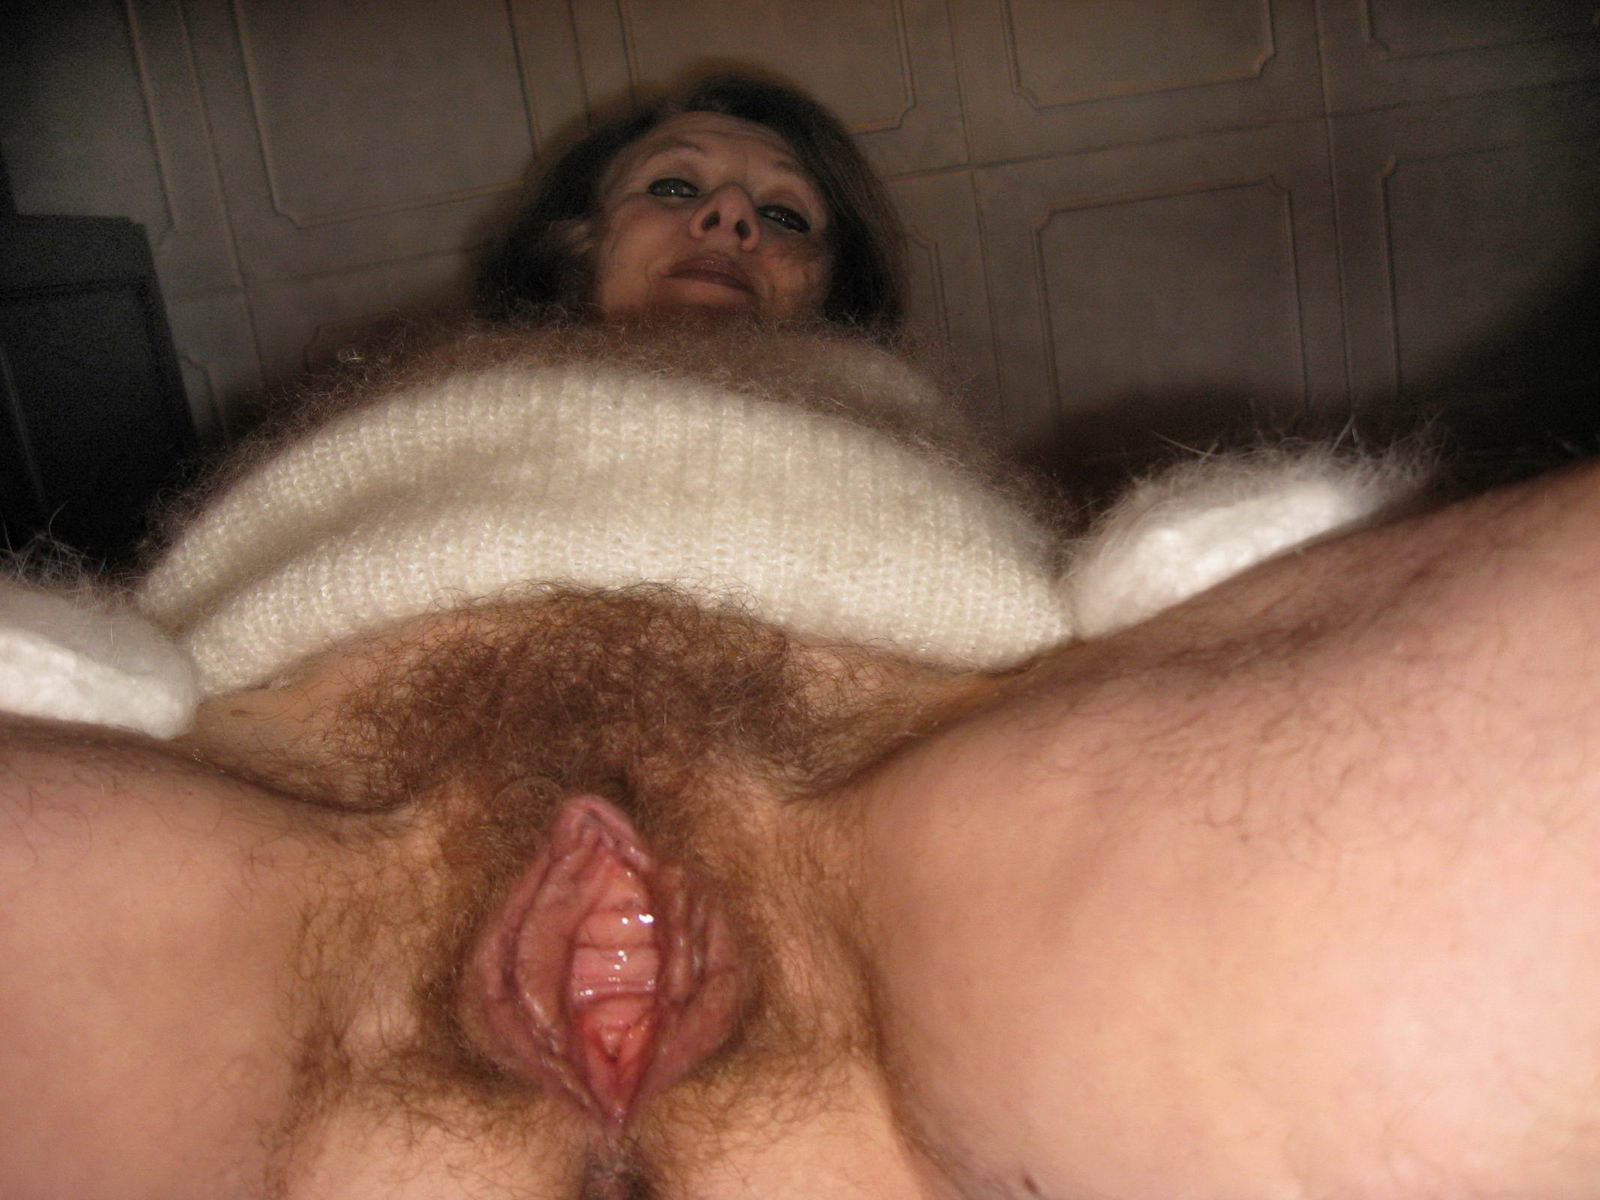 Hot Granny Porn Pictures And Vids - Free Granny And Mature -9689